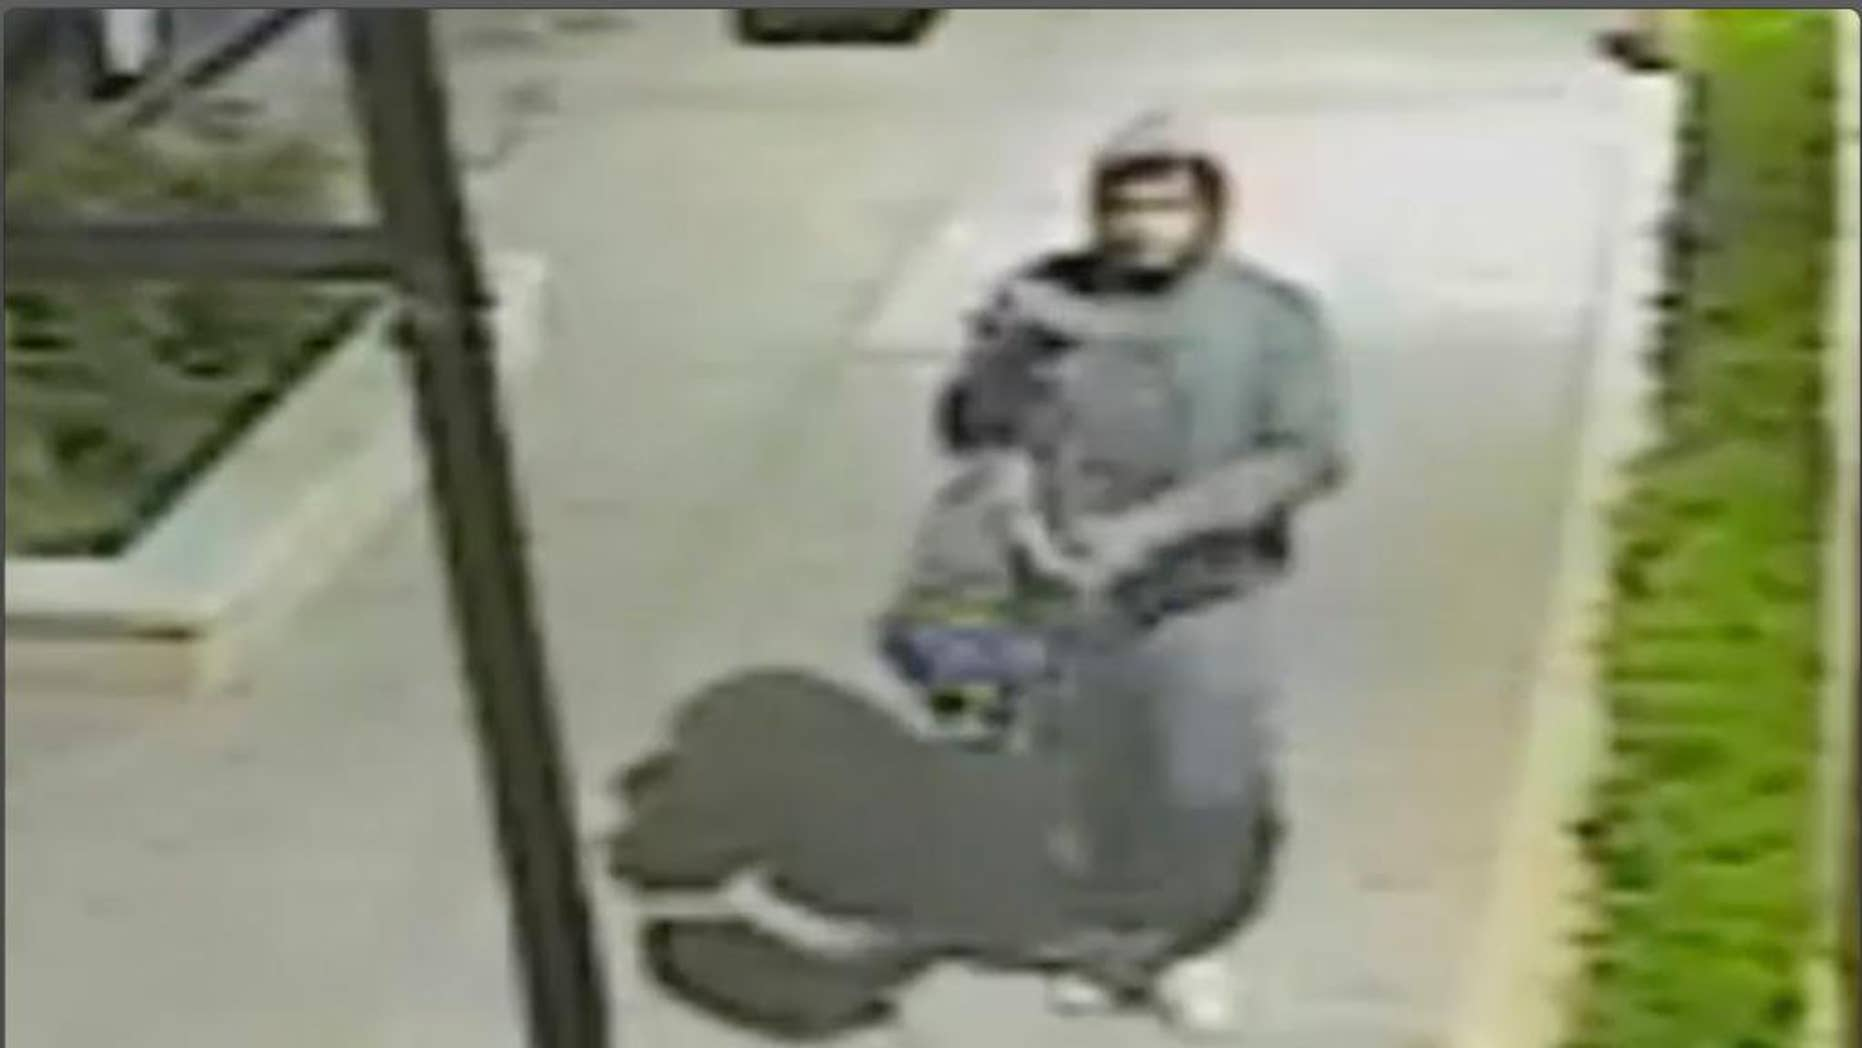 This image made from undated surveillance video provided by the New York City Police Department on Friday, May 5, 2017 shows a man who beat and sexually assaulted a German tourist in an attack caught on video around 3 a.m. Thursday. The woman was walking along West 146th Street in Harlem to rental accommodations. The video captured the man yanking away the woman's bag, punching her in the head and repeatedly hitting her as she lies on the ground. (New York City Police Department via AP)